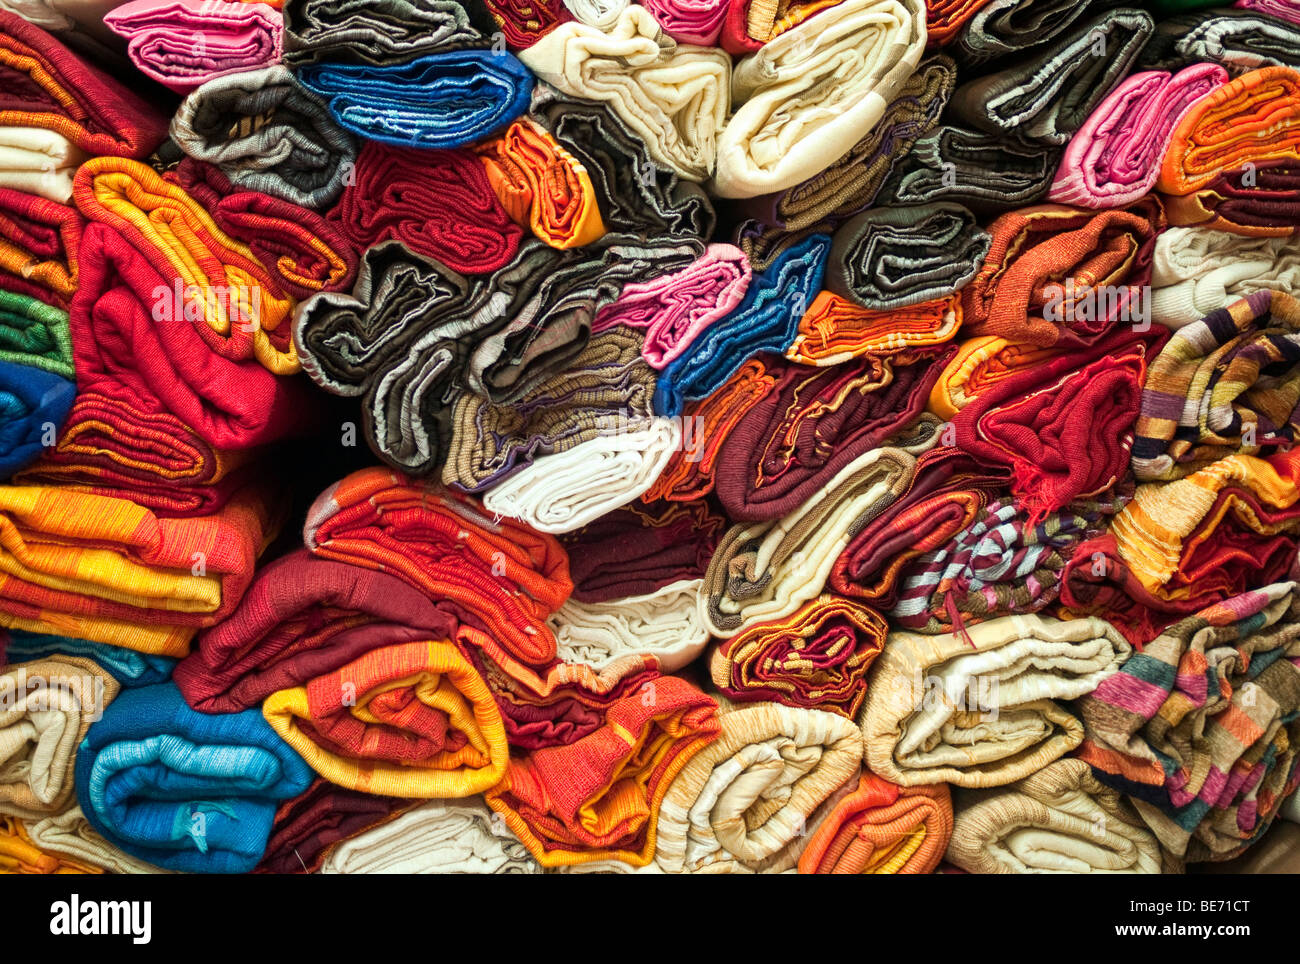 Colorful textiles in the Suq, Medina, Marrakech, Morocco, Africa - Stock Image